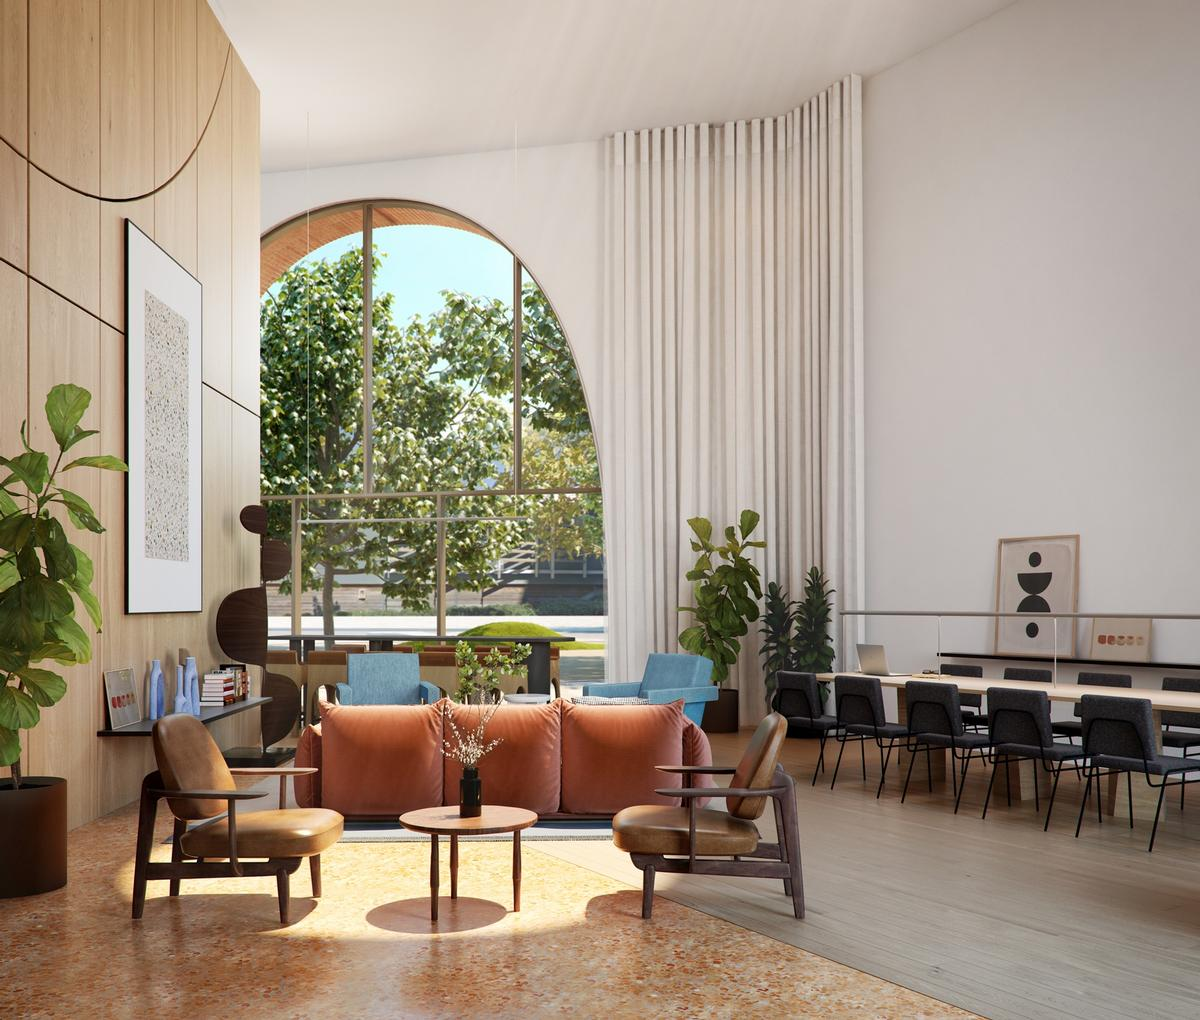 A residents' lounge will provide a communal space for relaxing and gatherings / Alison Brooks Architects